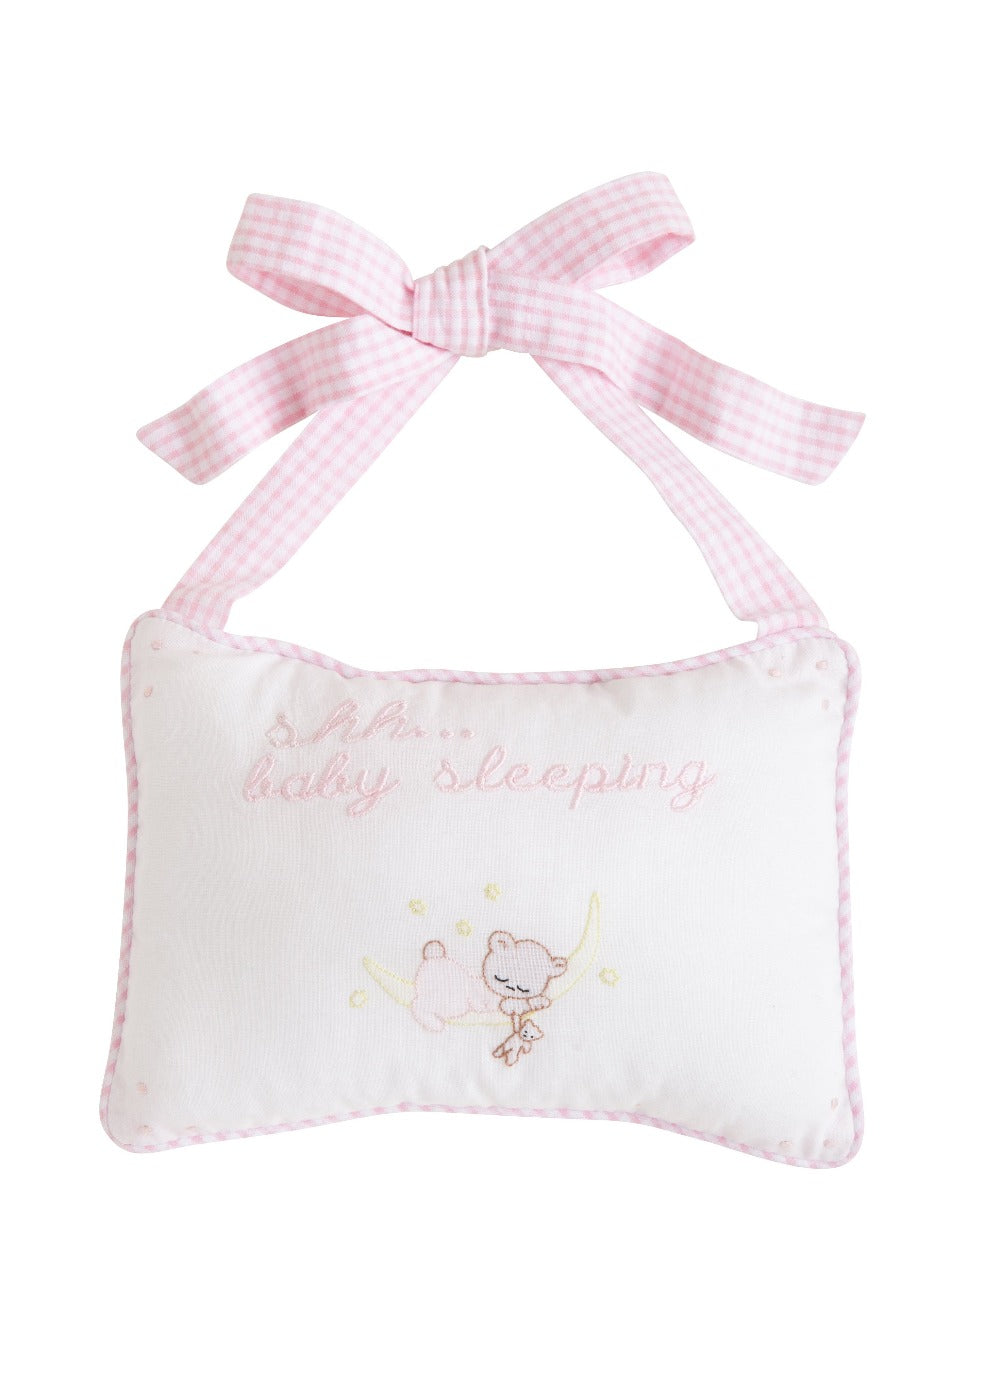 Door Pillow - Baby Girl, Little English, Little English, classic children's clothing, preppy children's clothing, little English clothing, classic baby clothing, traditional children's clothing, children's clothing, baby clothing